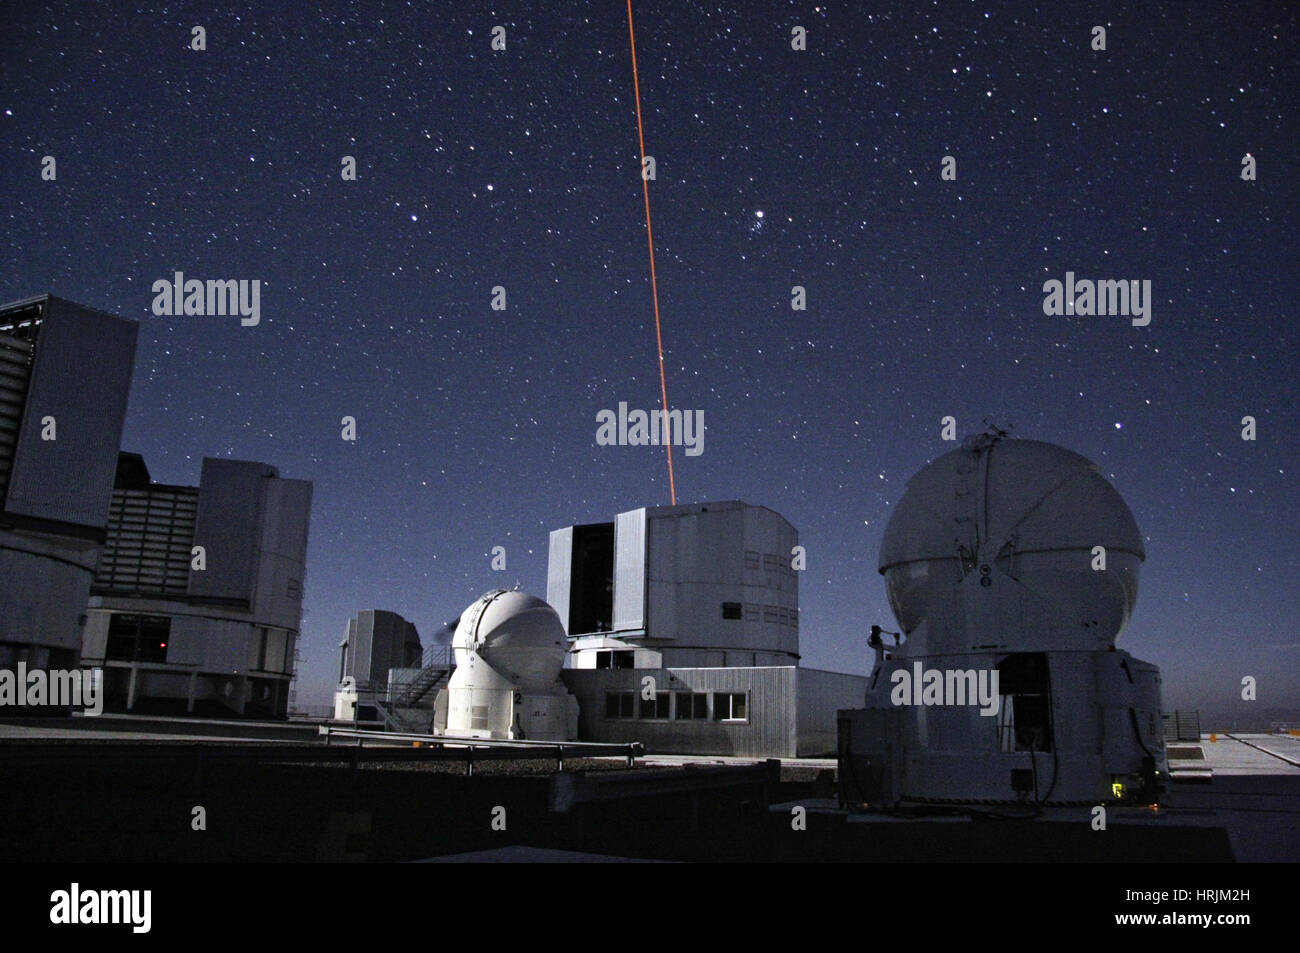 Laser Guide Star, Paranal Observatory Stock Photo: 135020553